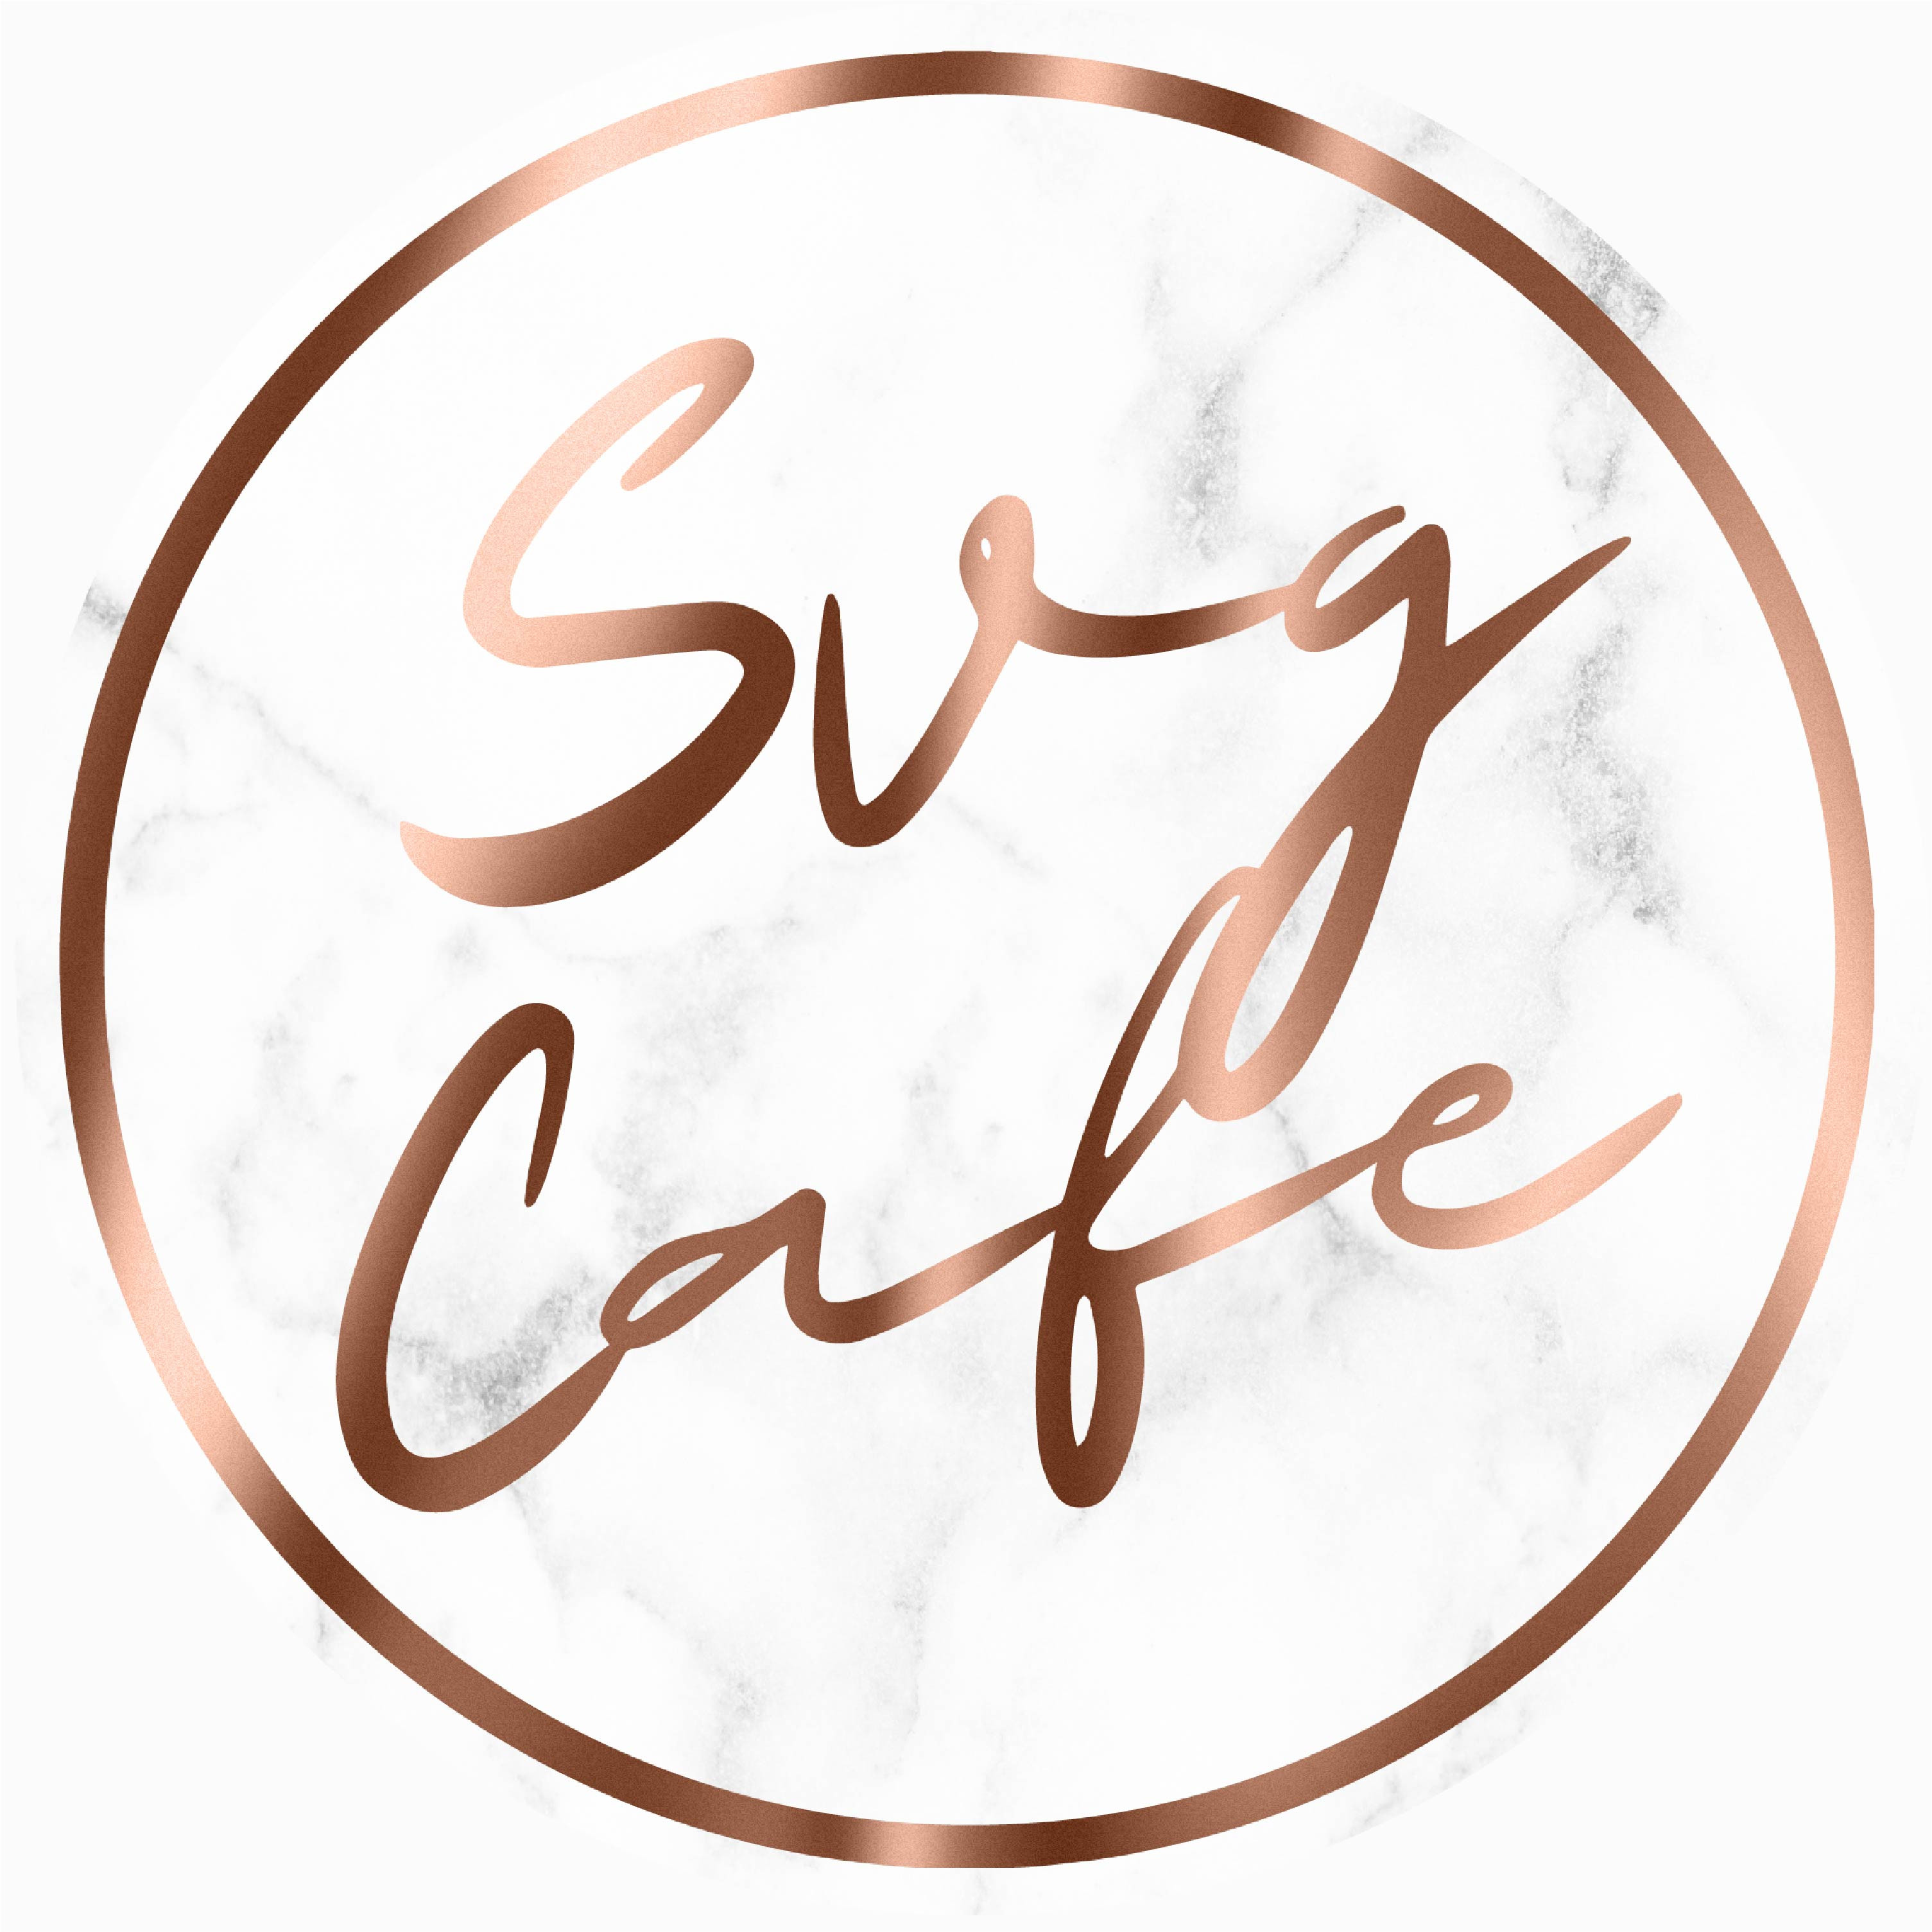 Svg Cafe's profile picture